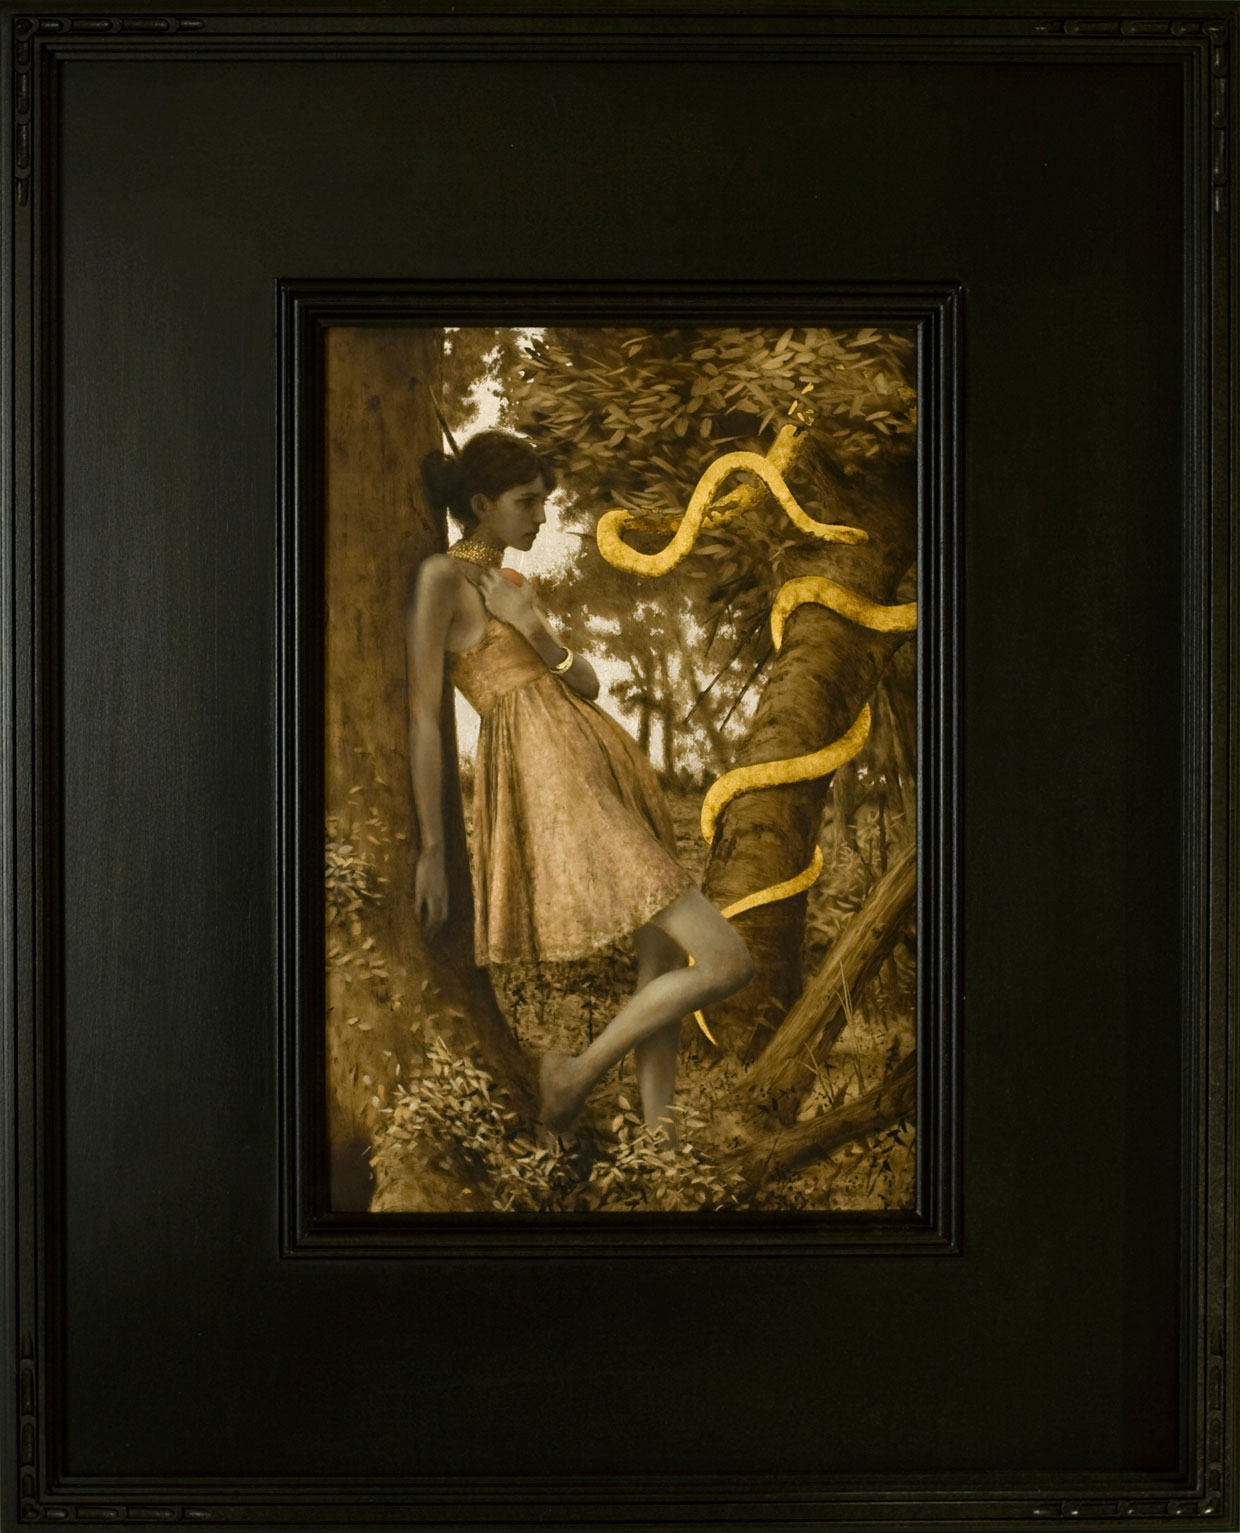 Into the Deep.  10 x 8 inches. Oil, gold and silver leaf on linen. Private collection.